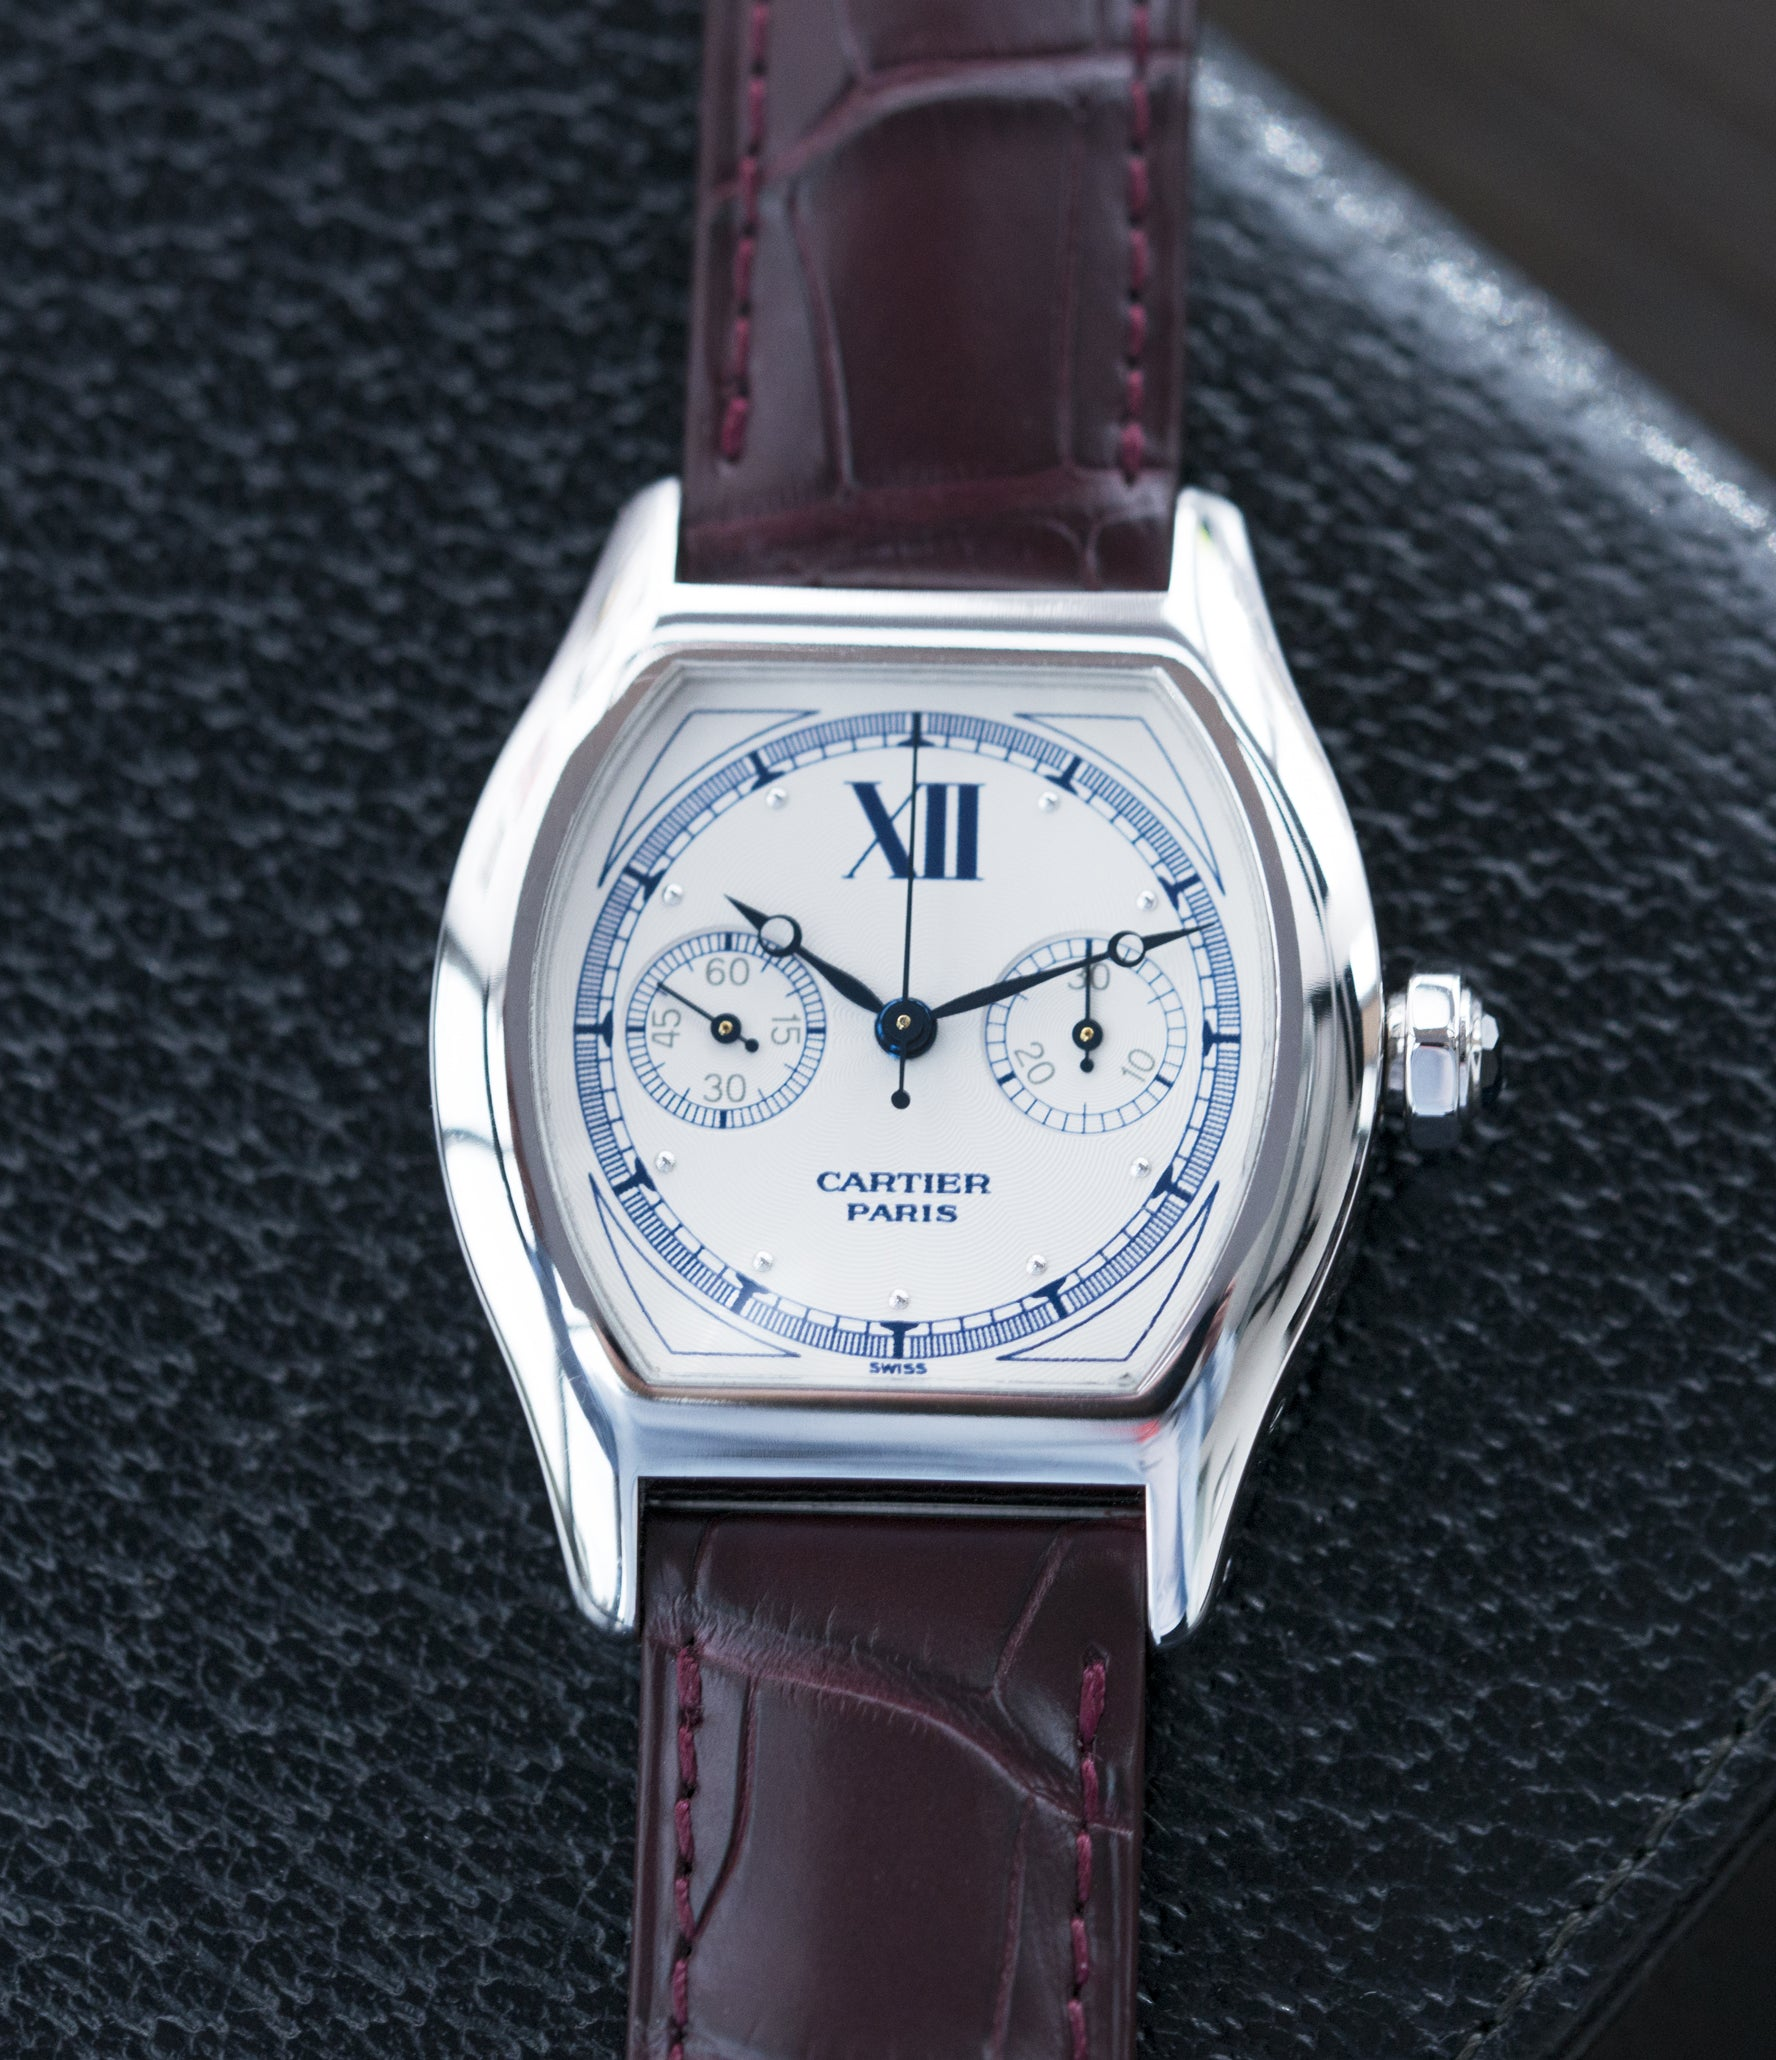 buying Cartier Monopusher Monopoussoir ref. 2396 white gold dress watch  with THA ebauche for sale